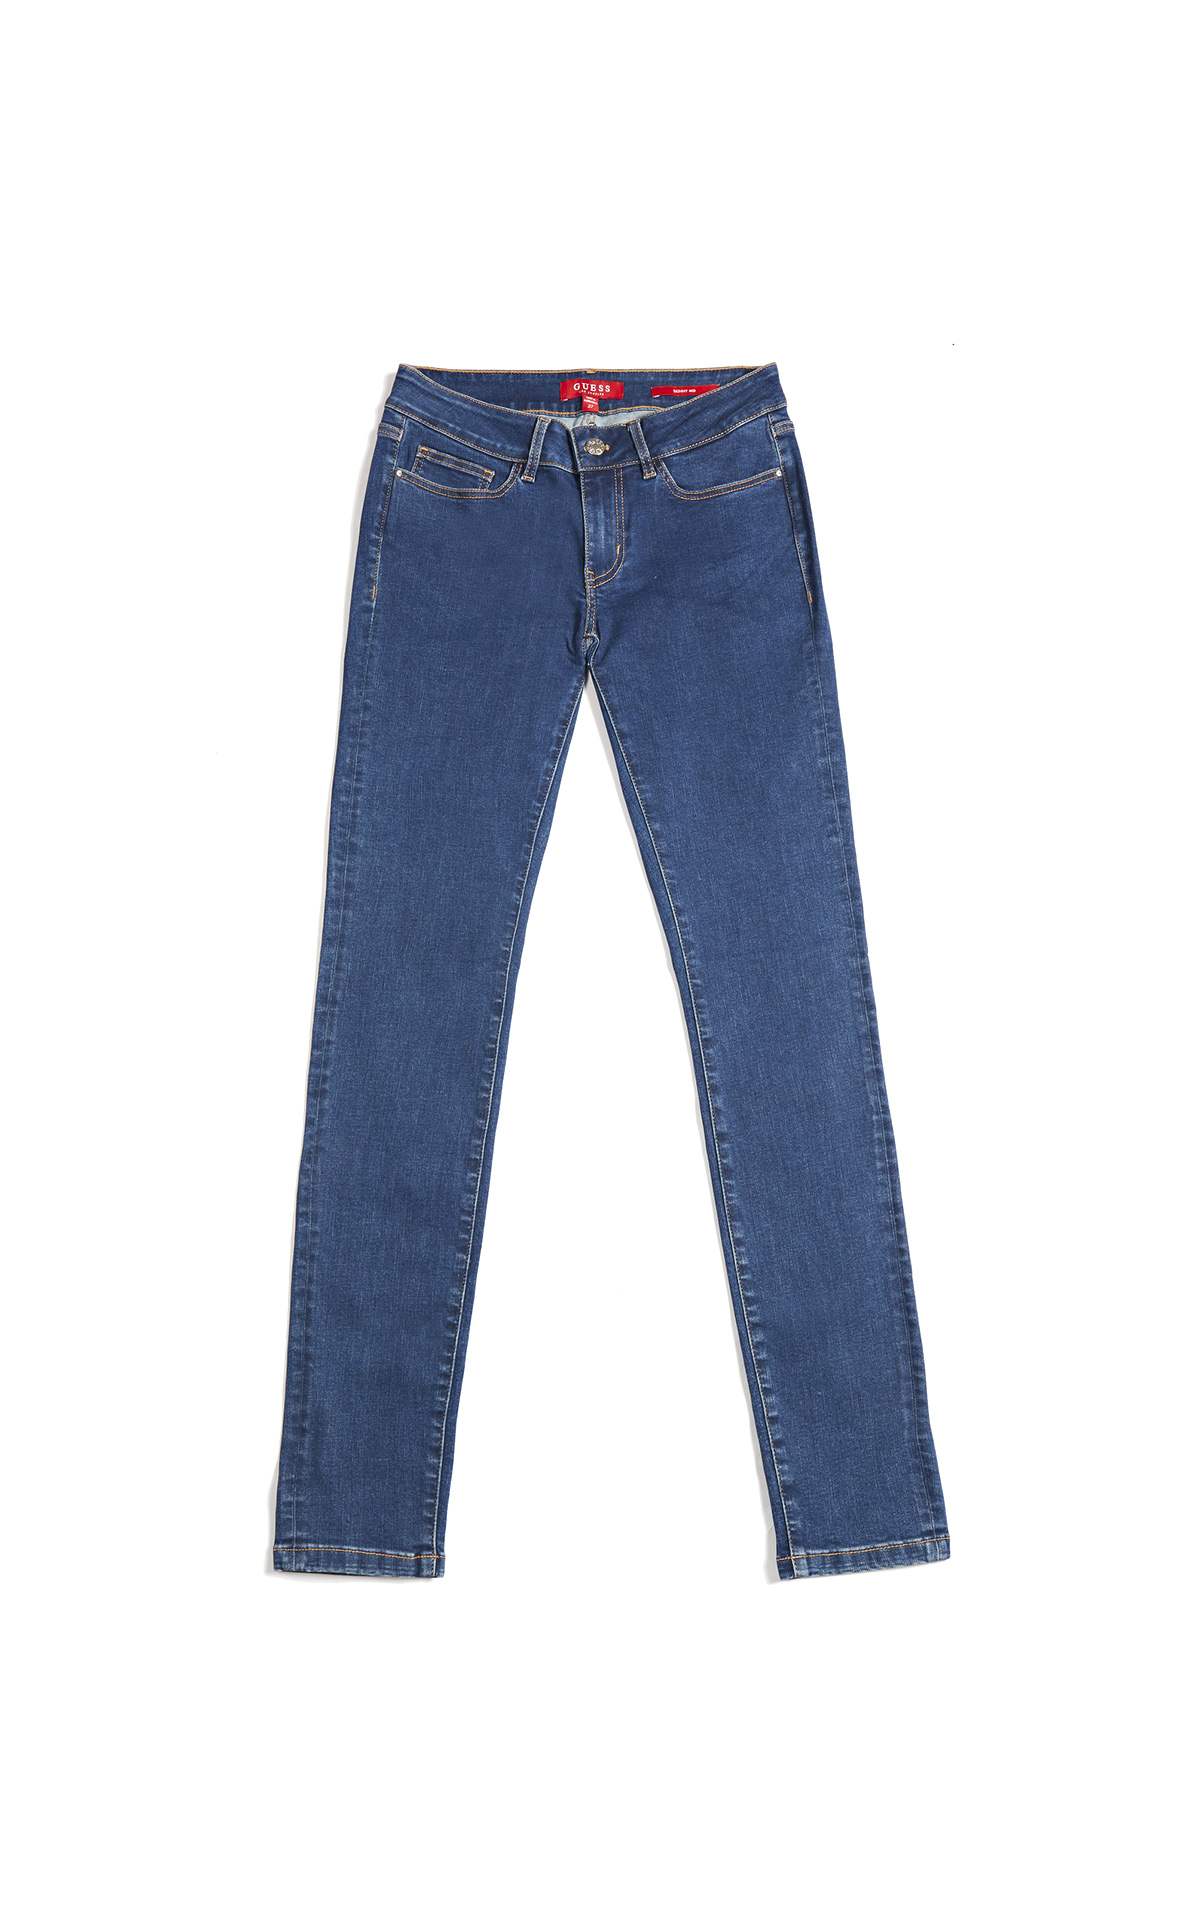 Blue denim jeans Guess